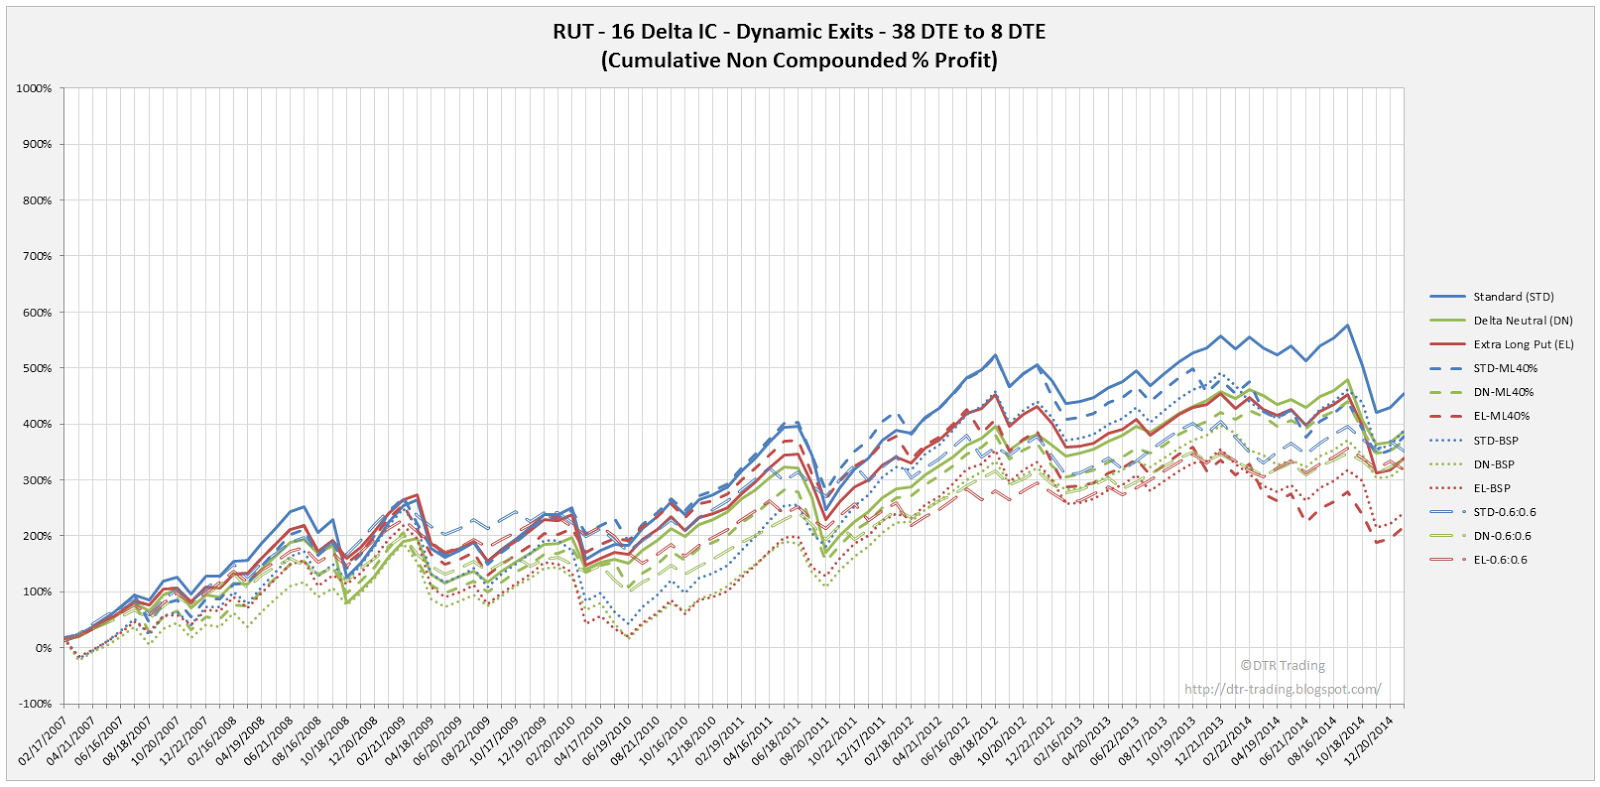 Iron Condor Equity Curves RUT 38 DTE 16 Delta All Versions